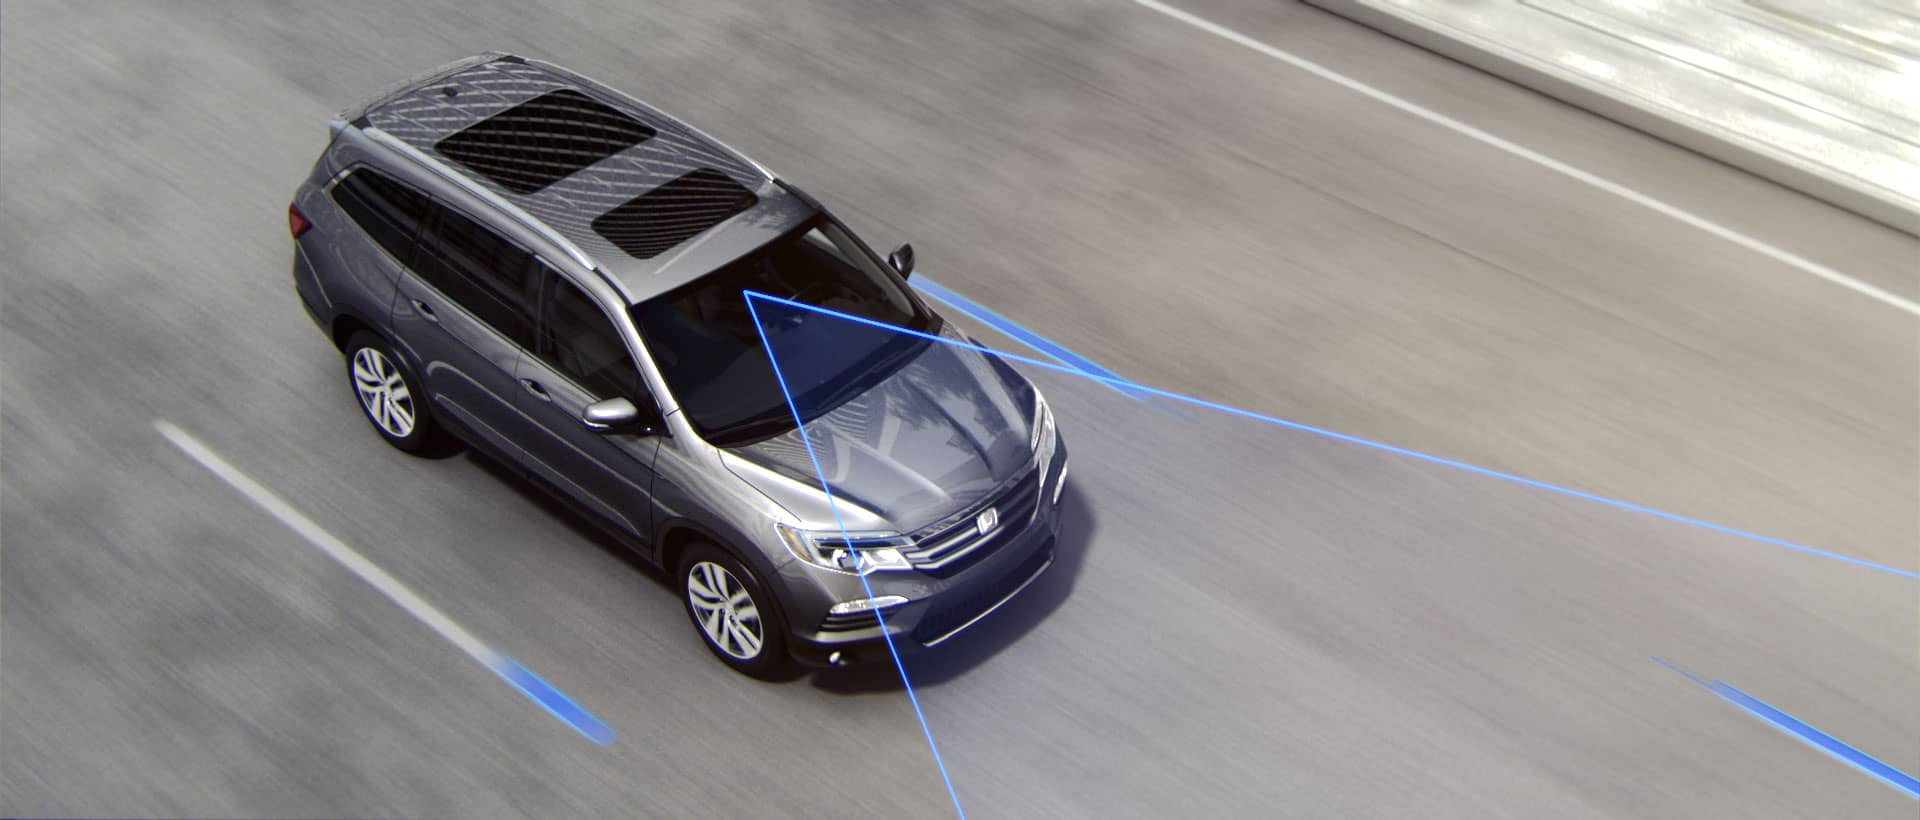 2019 Honda CR-V demonstrating an illustration of lane departure warning and Honda sensing technology